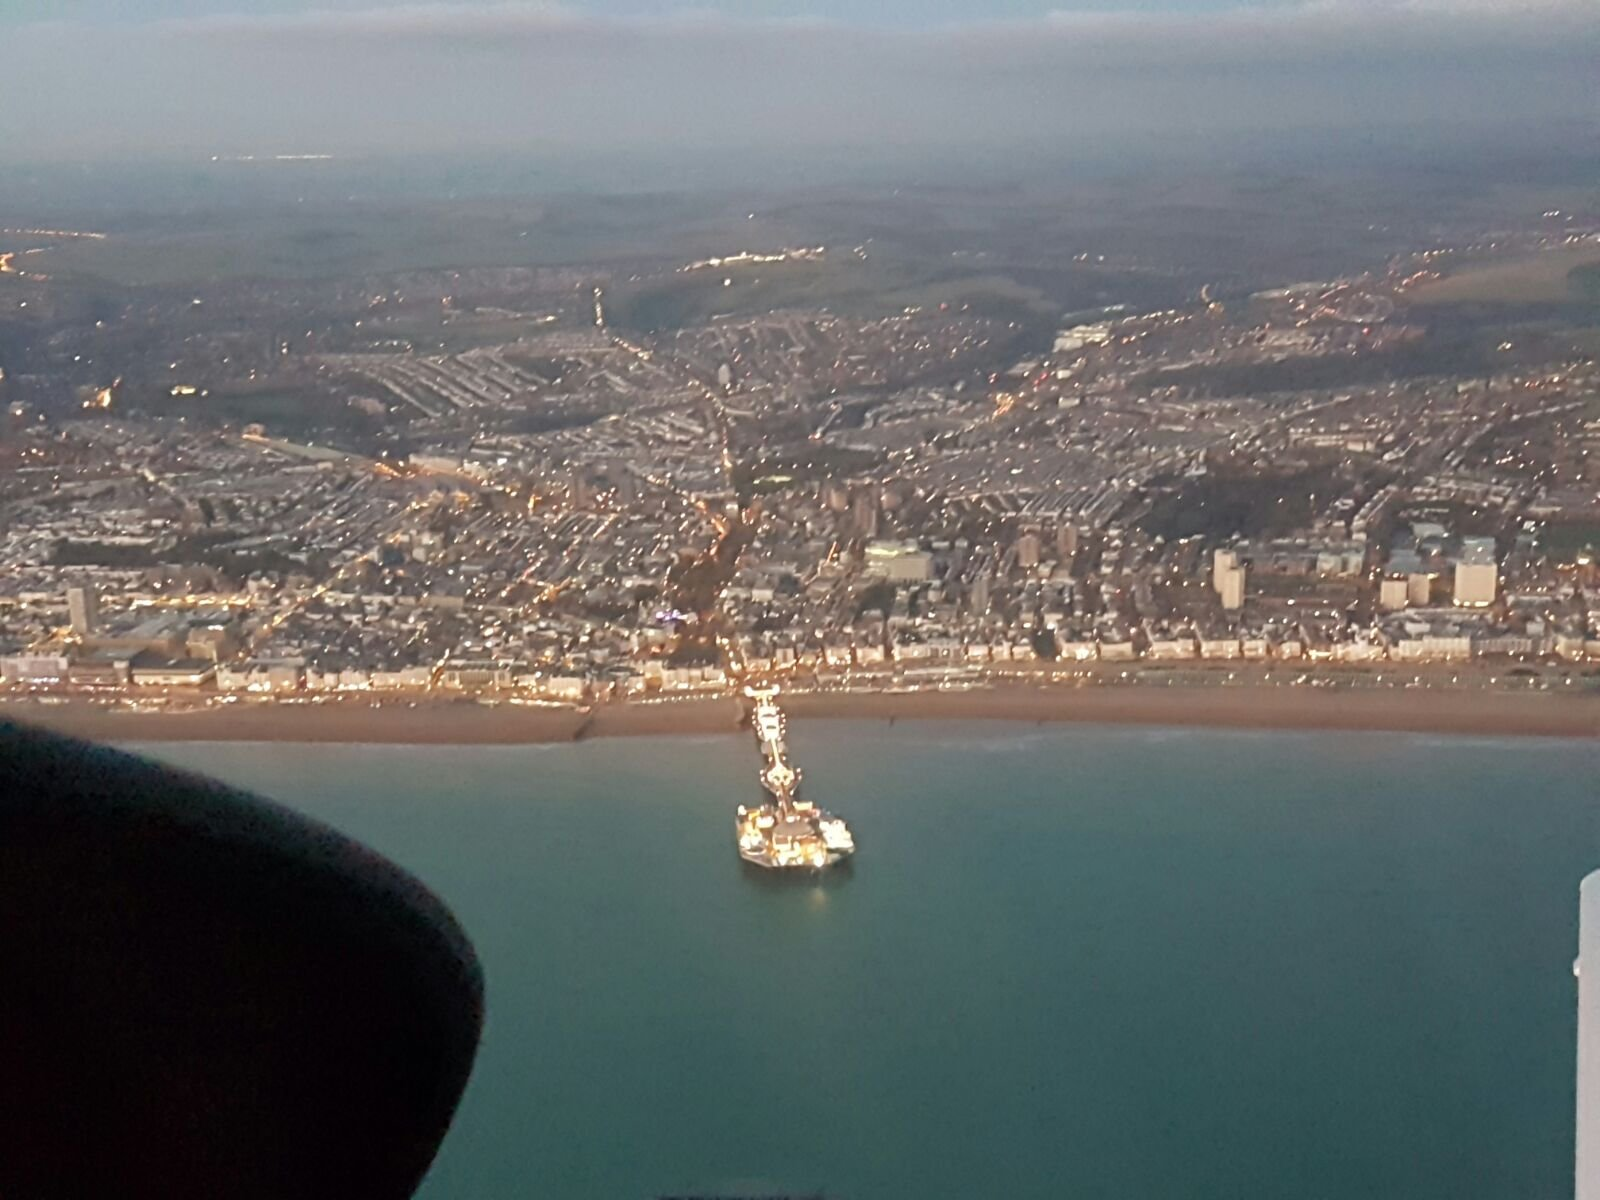 Brighton from the sky